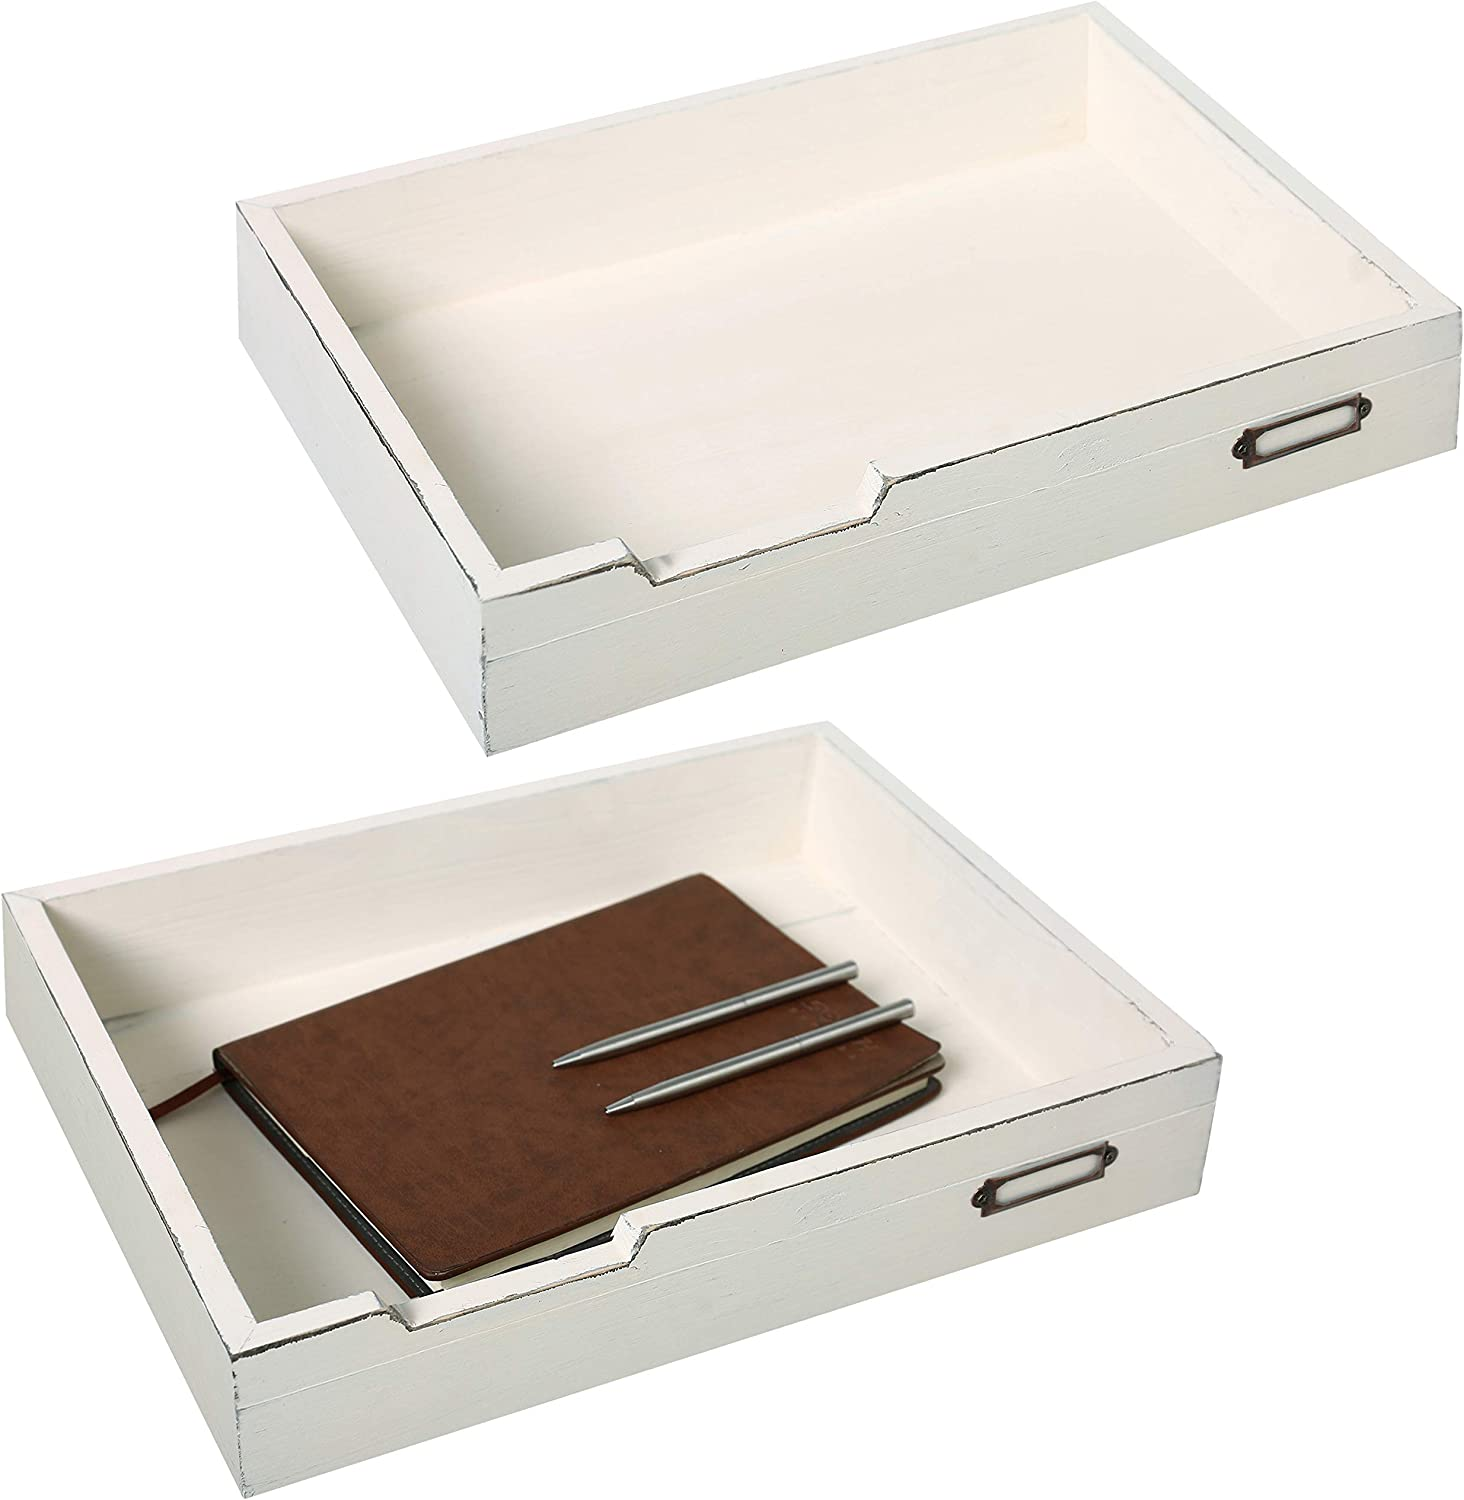 MyGift Set of 2 Vintage Distressed Finish White Wood Office Desktop Document Tray